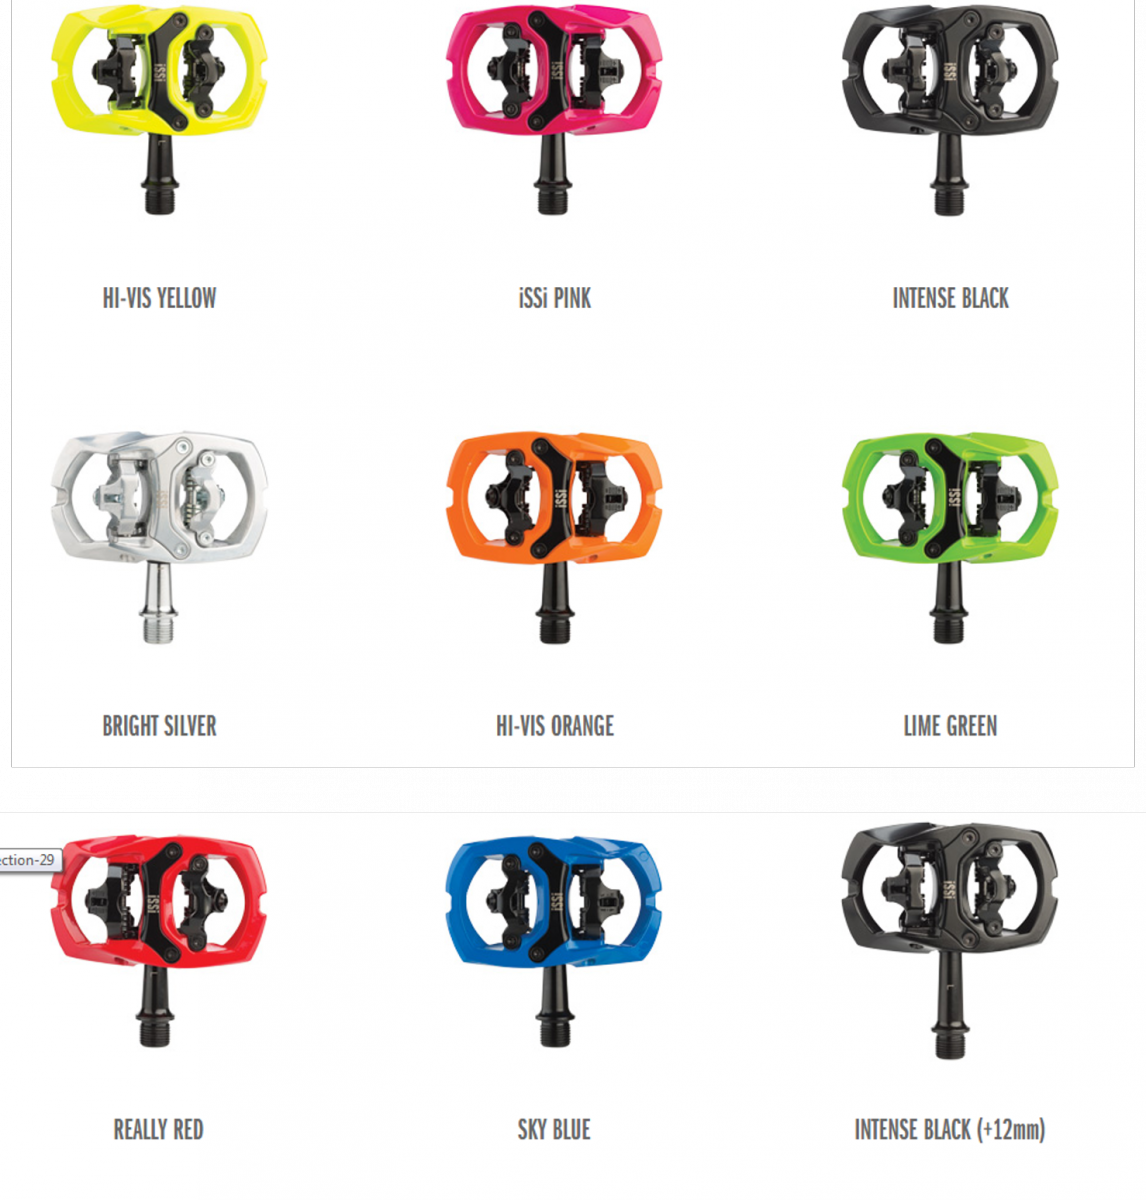 The iSSI Trail pedal comes in many colors for those who want to add a little customization to their rig.